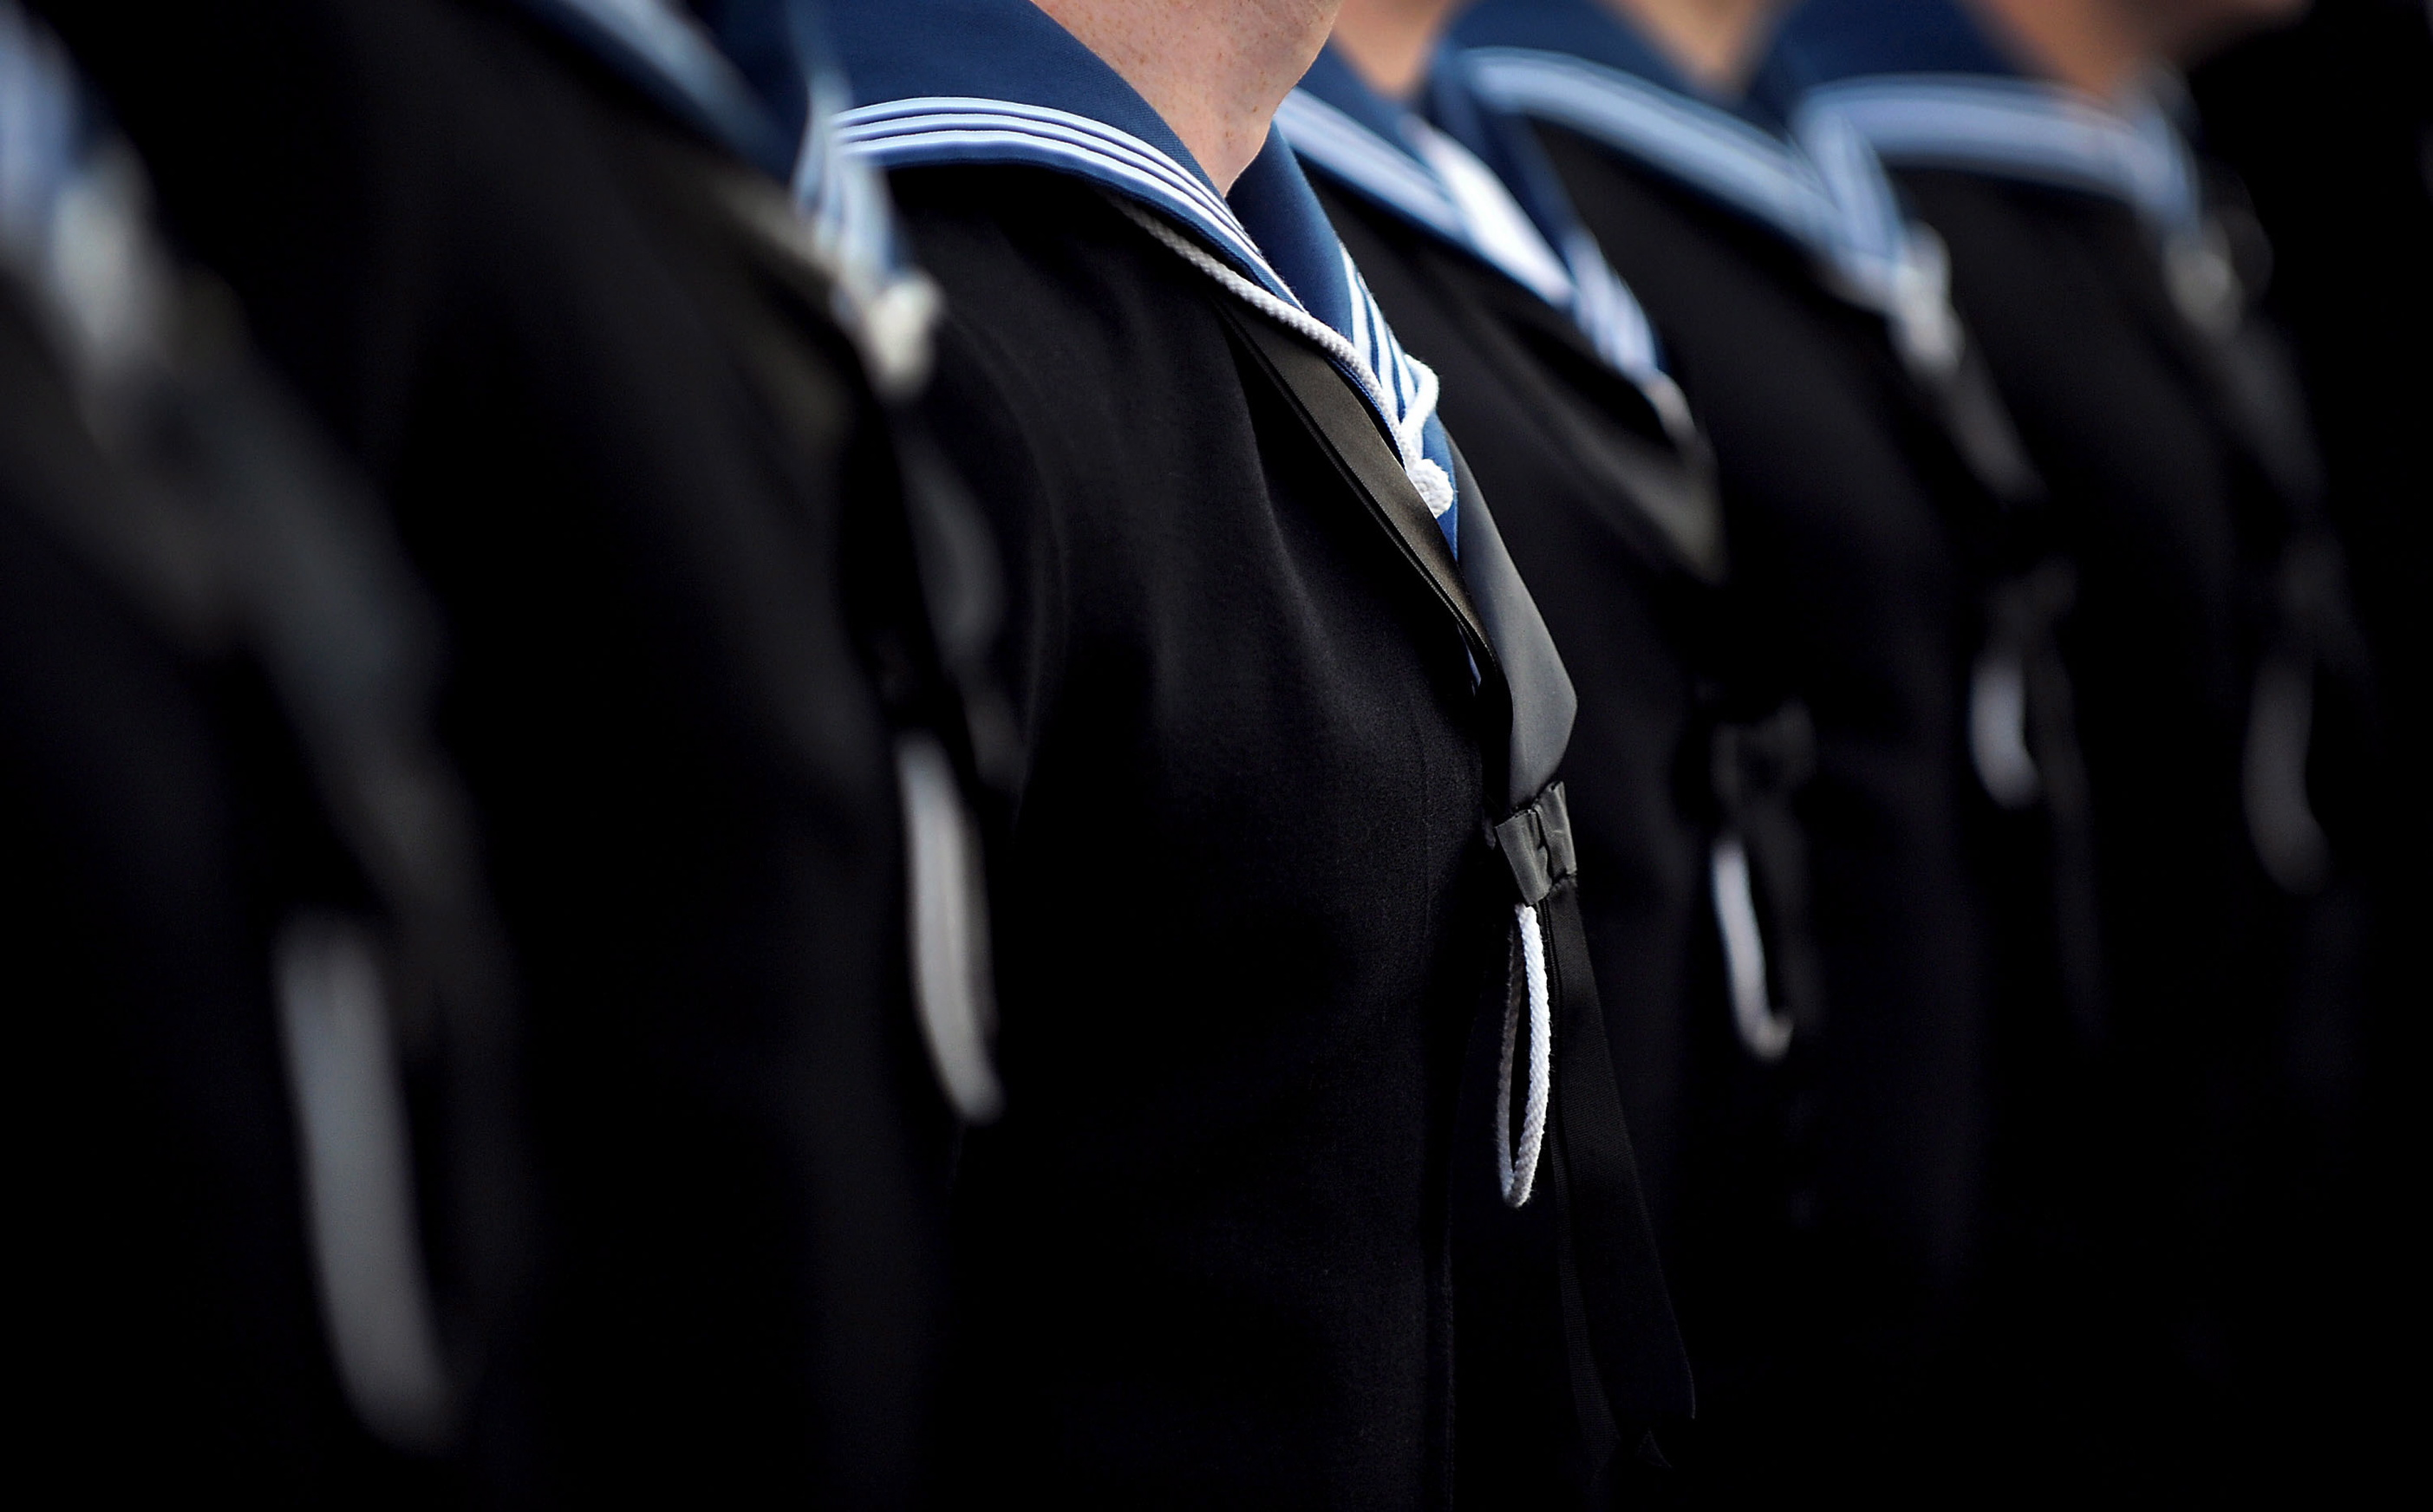 navy dating regulations Military dating rules and regulations can be confusing for someone who has never dealt with military issues when you become involved with someone in the military, you want to make sure you stay on the right side of those rules and regulations.